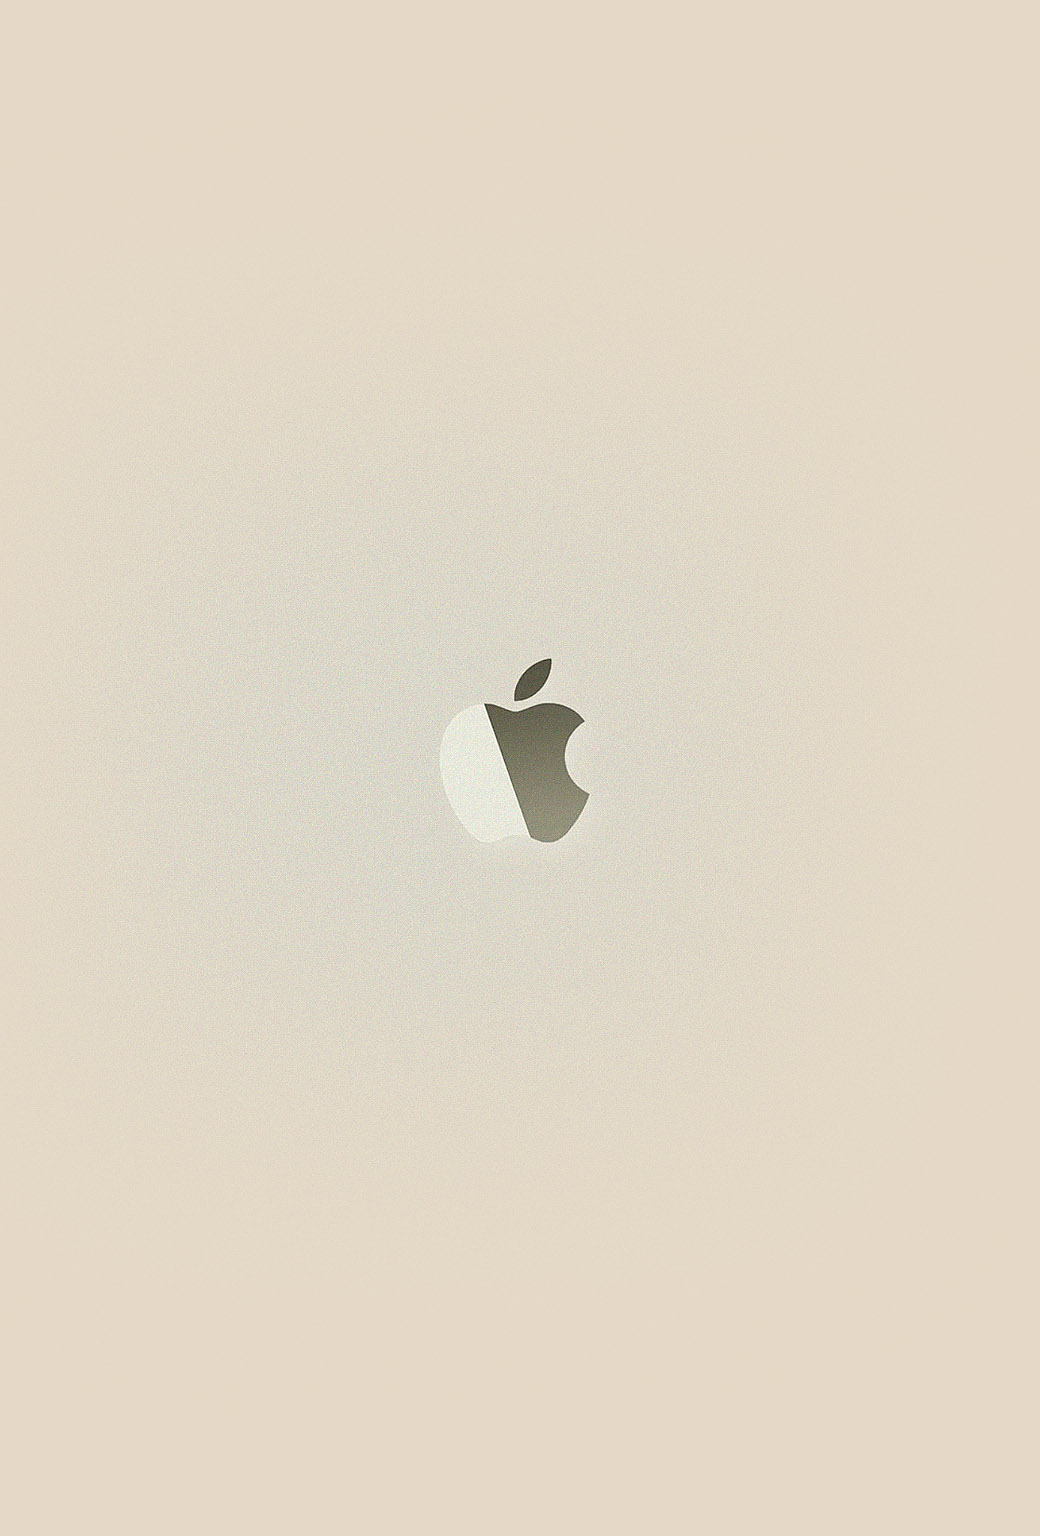 Iphone Parallax Wallpaper Apple Tribute Wallpapers